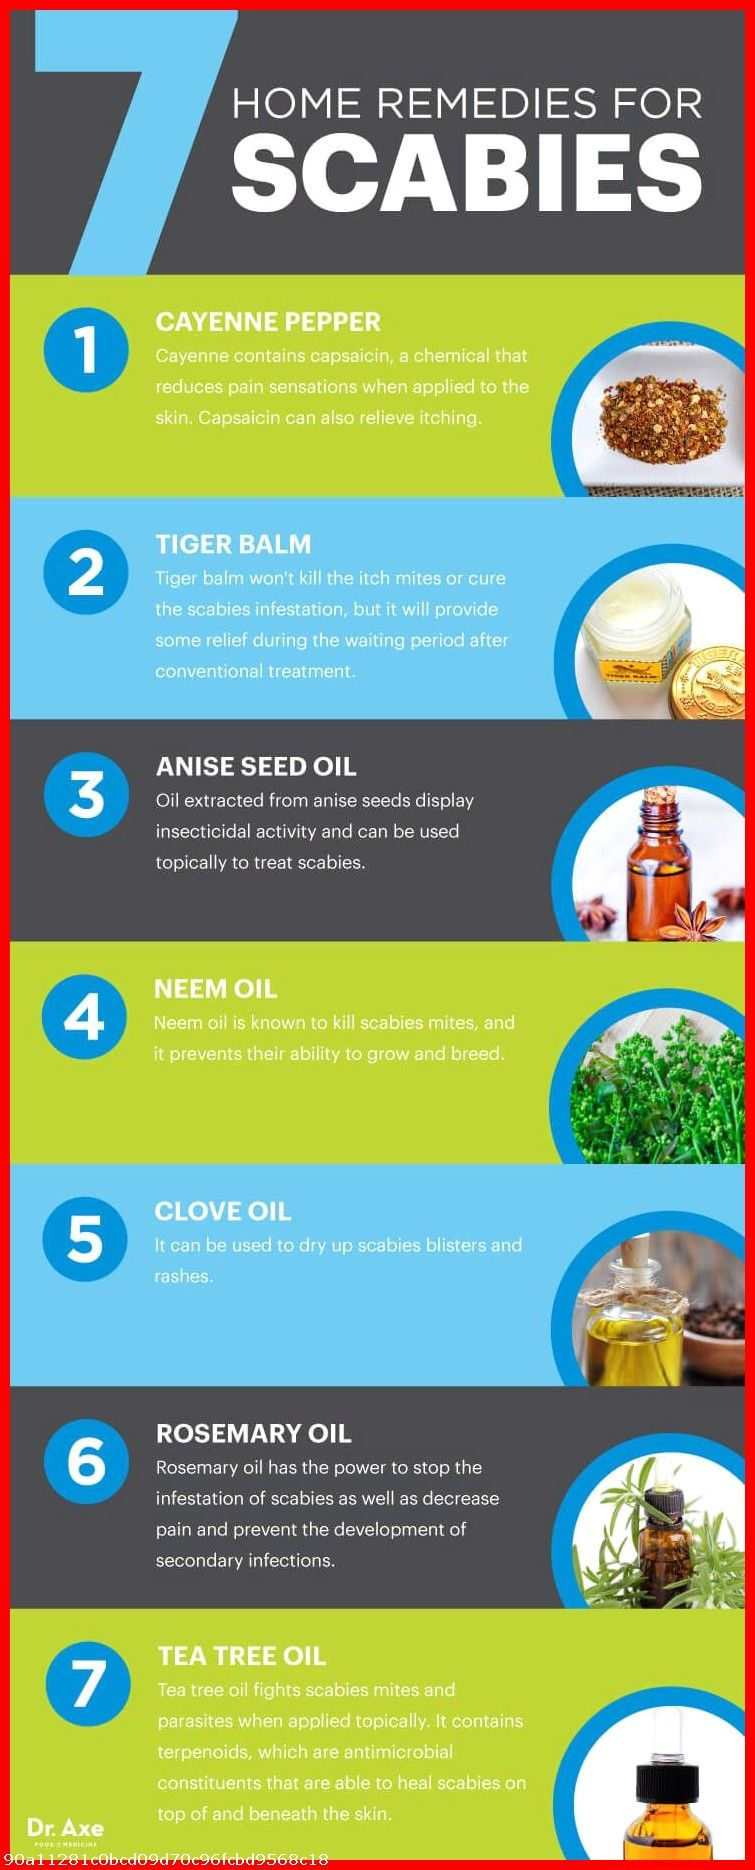 Puppy Training Tips O8v7 Home Remedies For Scabies Natural Healing Remedies Remedies